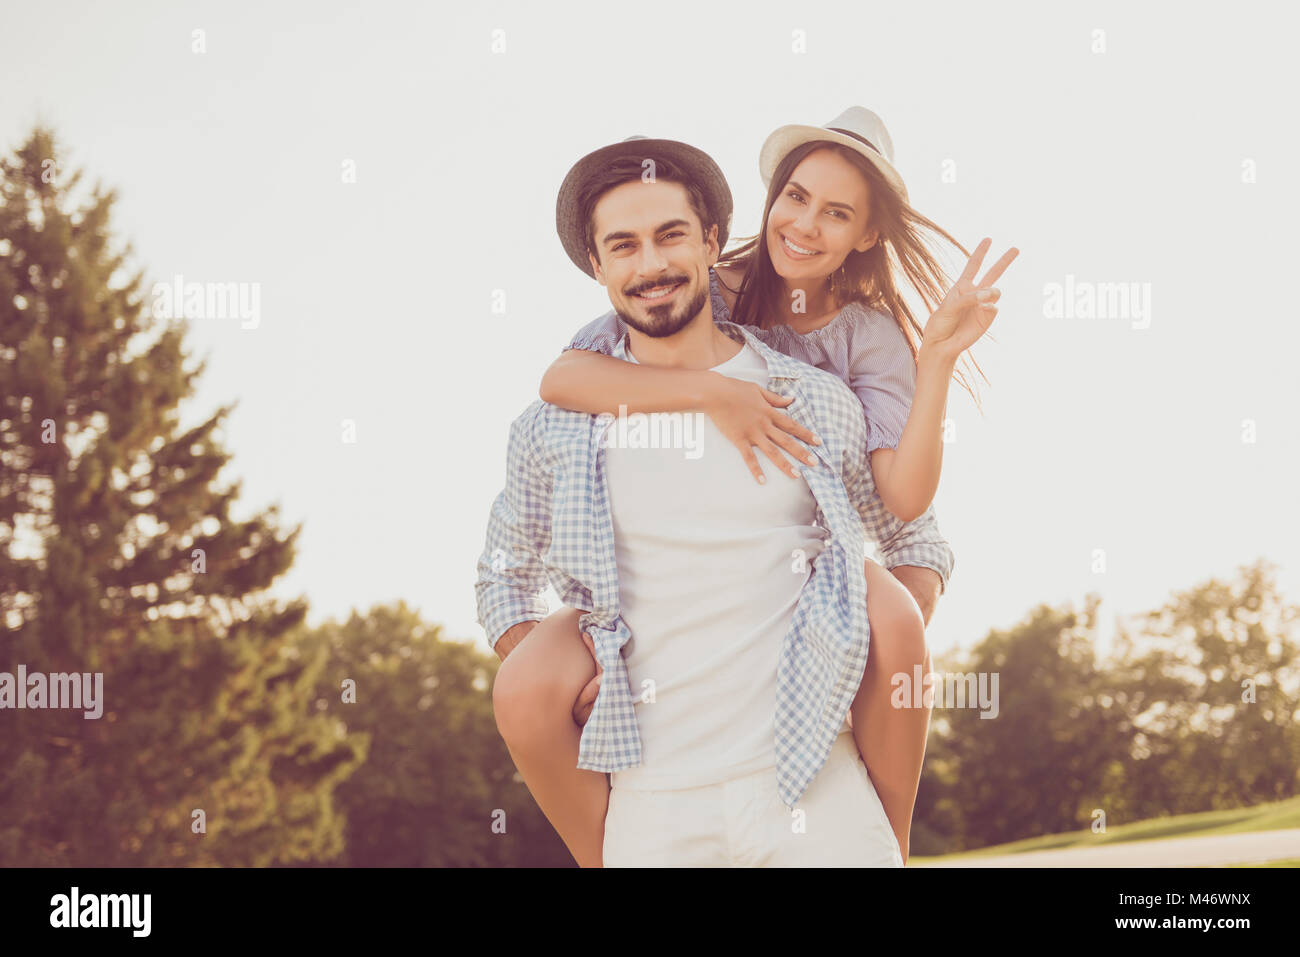 Attractive cute sweet partner piggybacking his gorgeous lady, she cuddles, rides him, shows peace sign. Date outside, - Stock Image